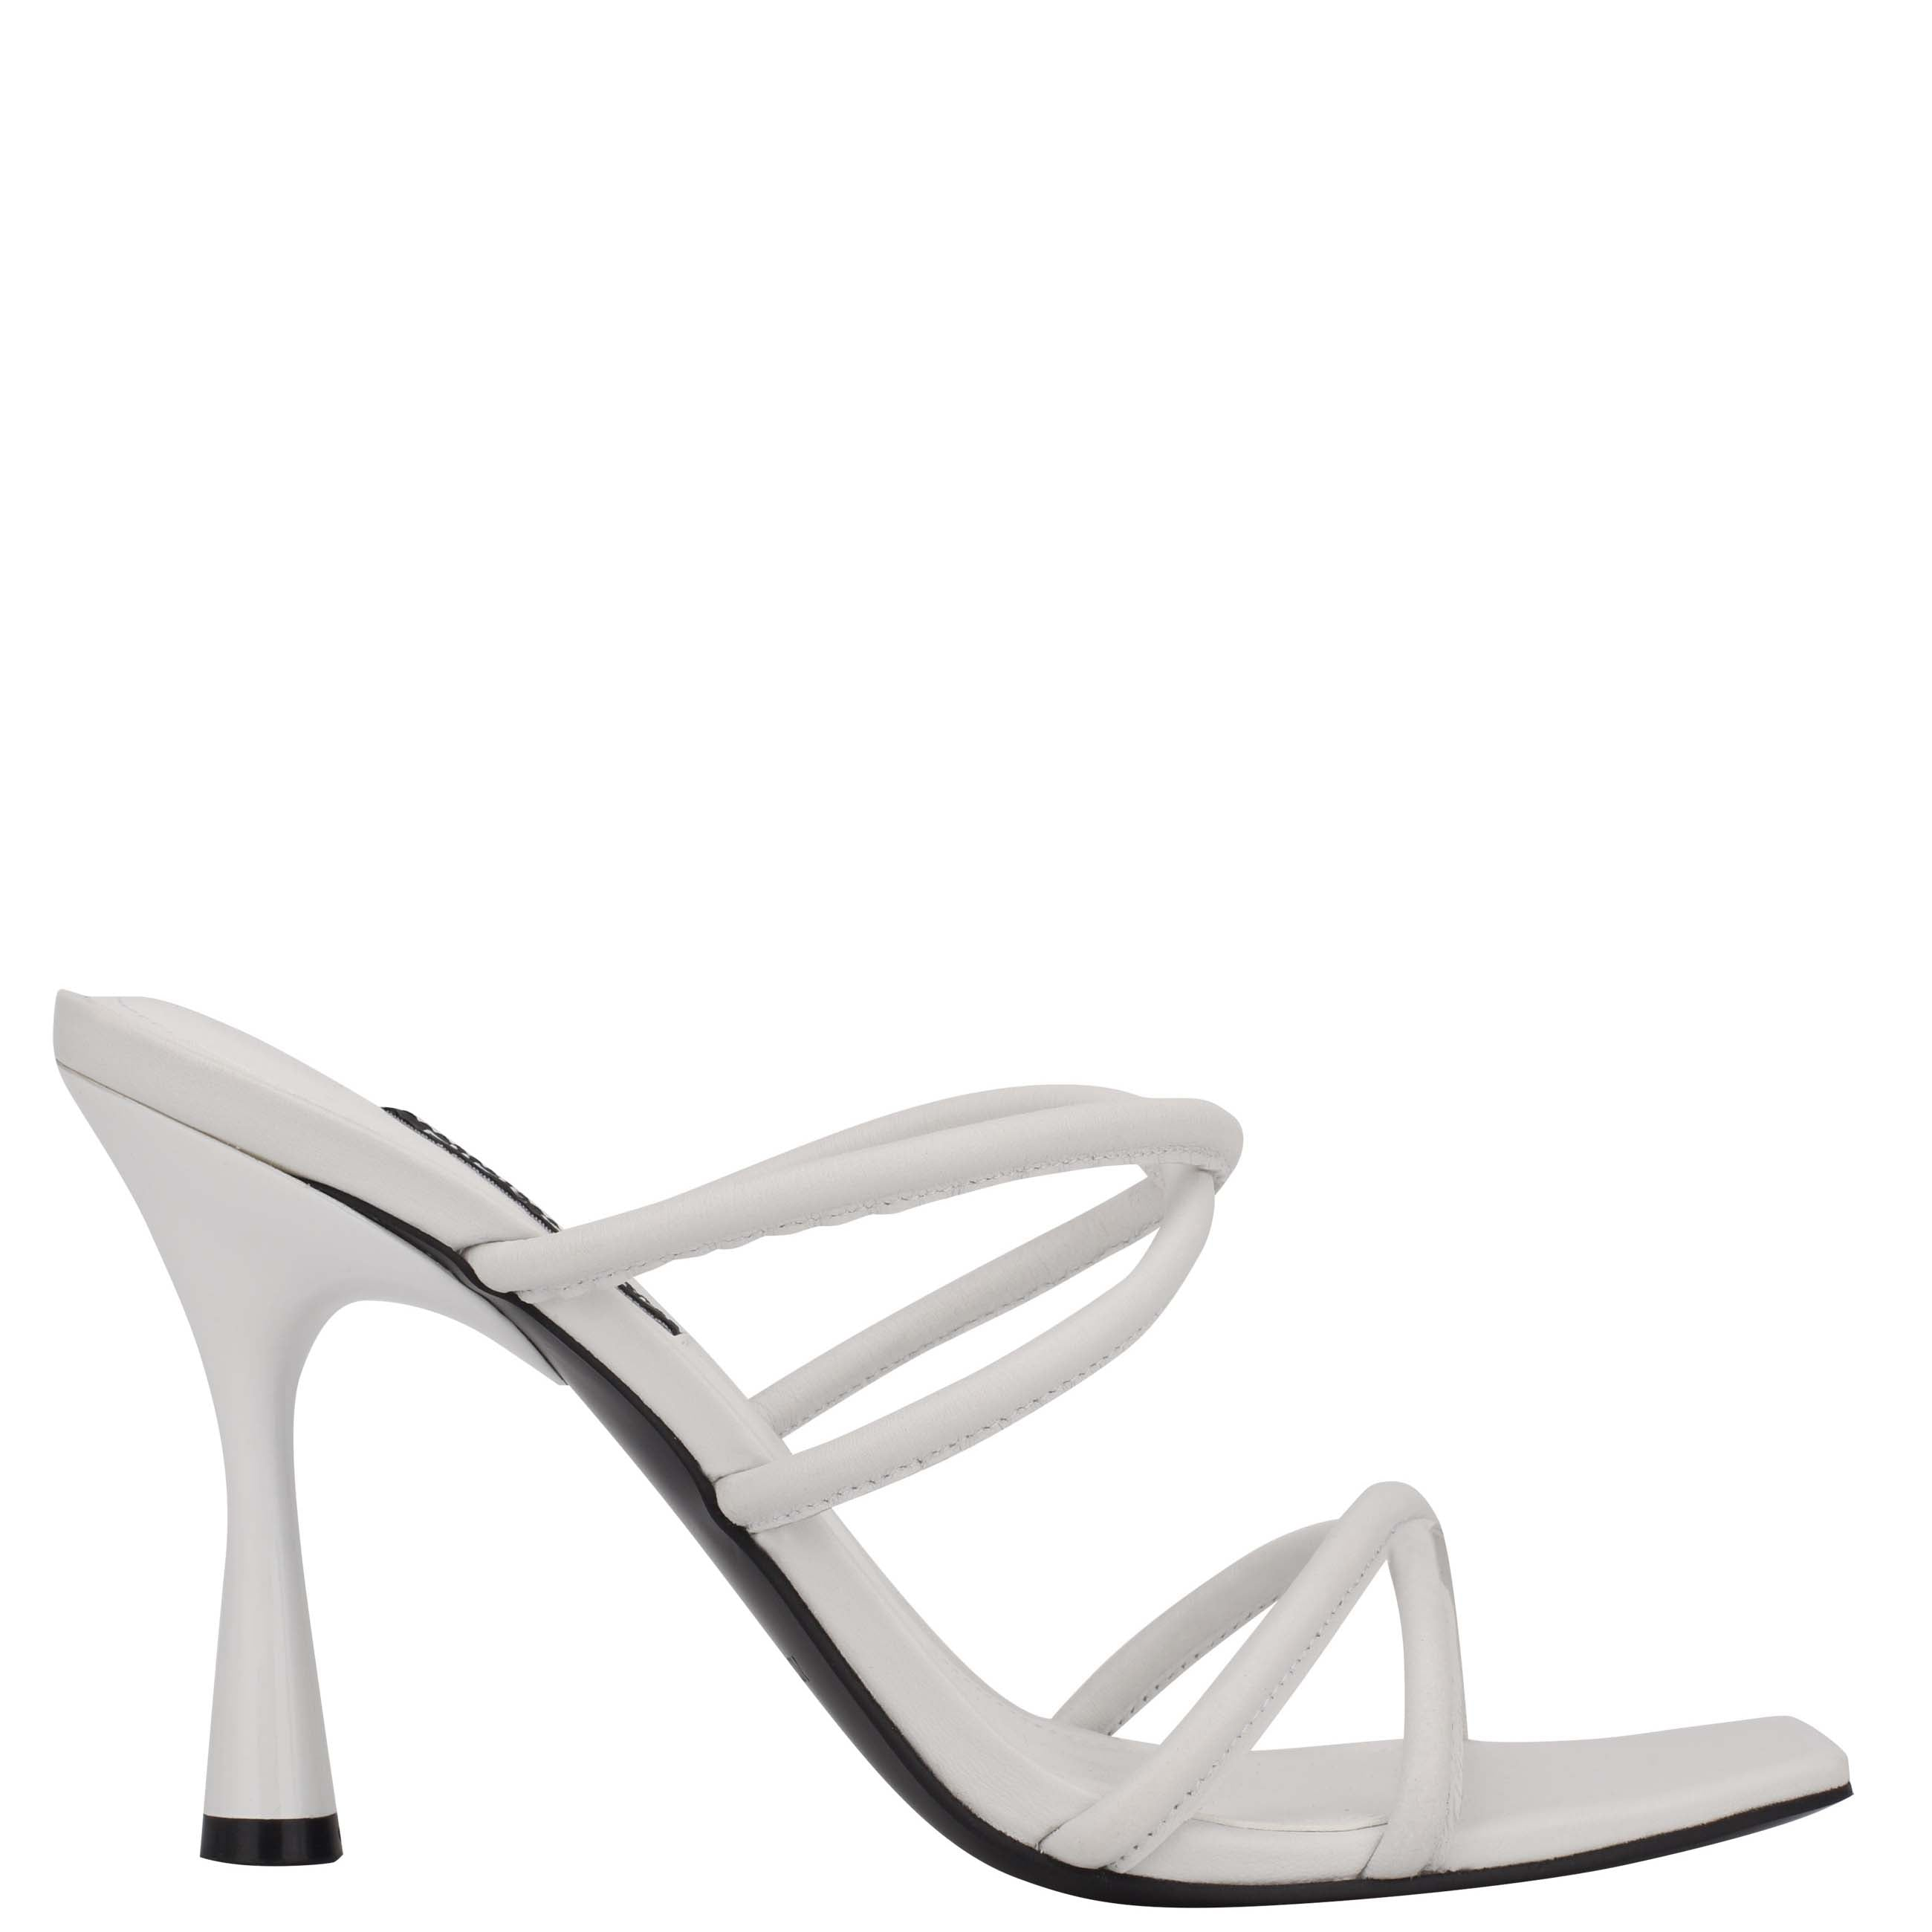 NINEWEST Fabiola Square-Toe Slide Sandals